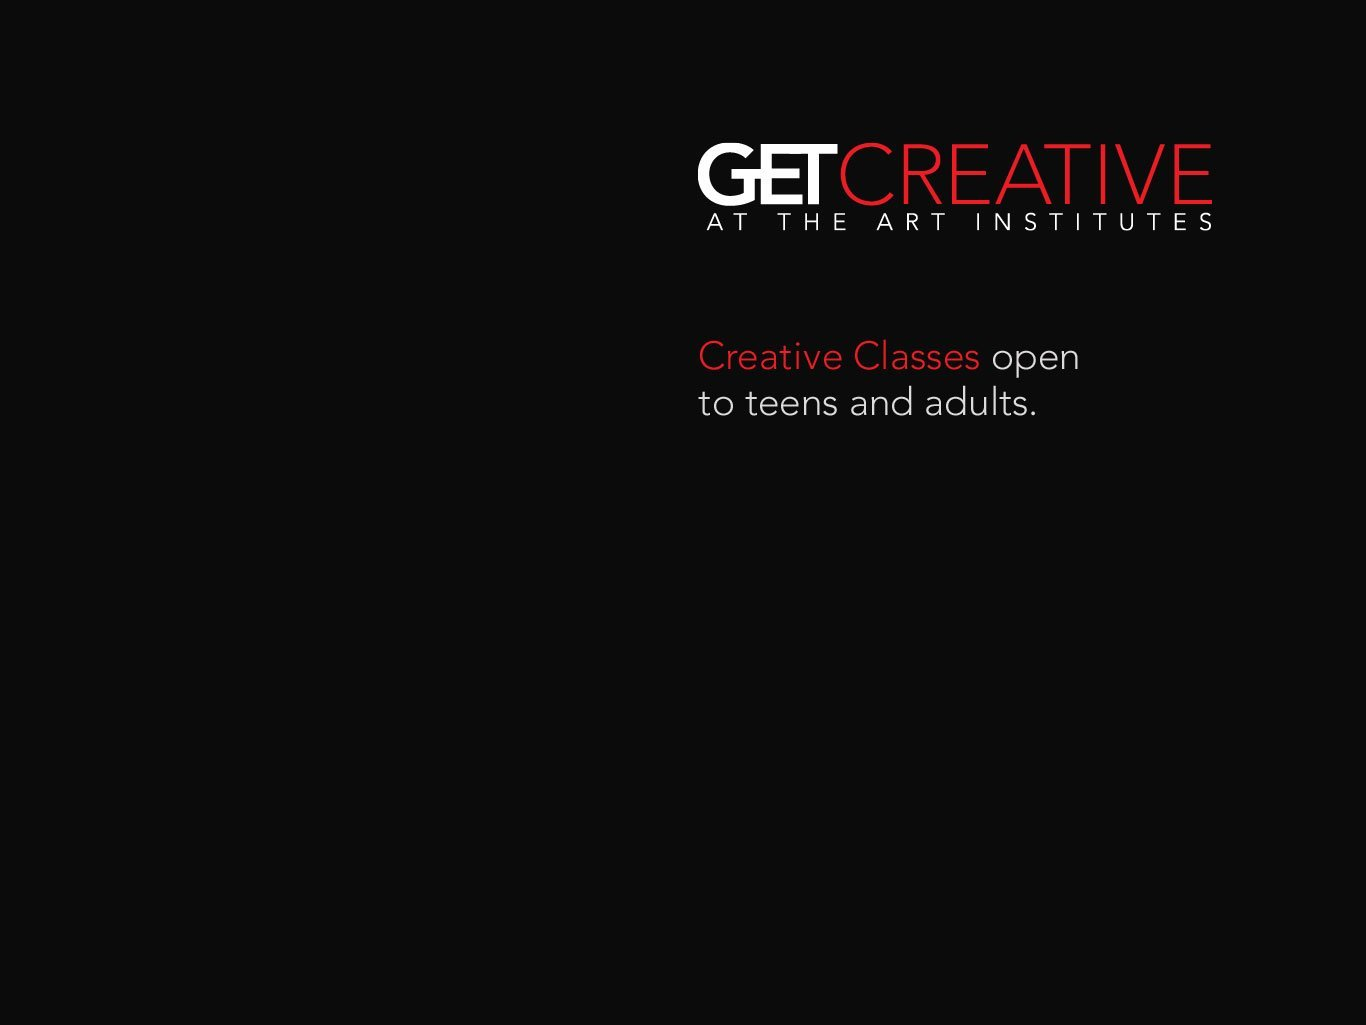 Get Creative At The Art Institutes | Creative classes Get Creative at The Art Institutes | Creative Classes open to teens and adults.